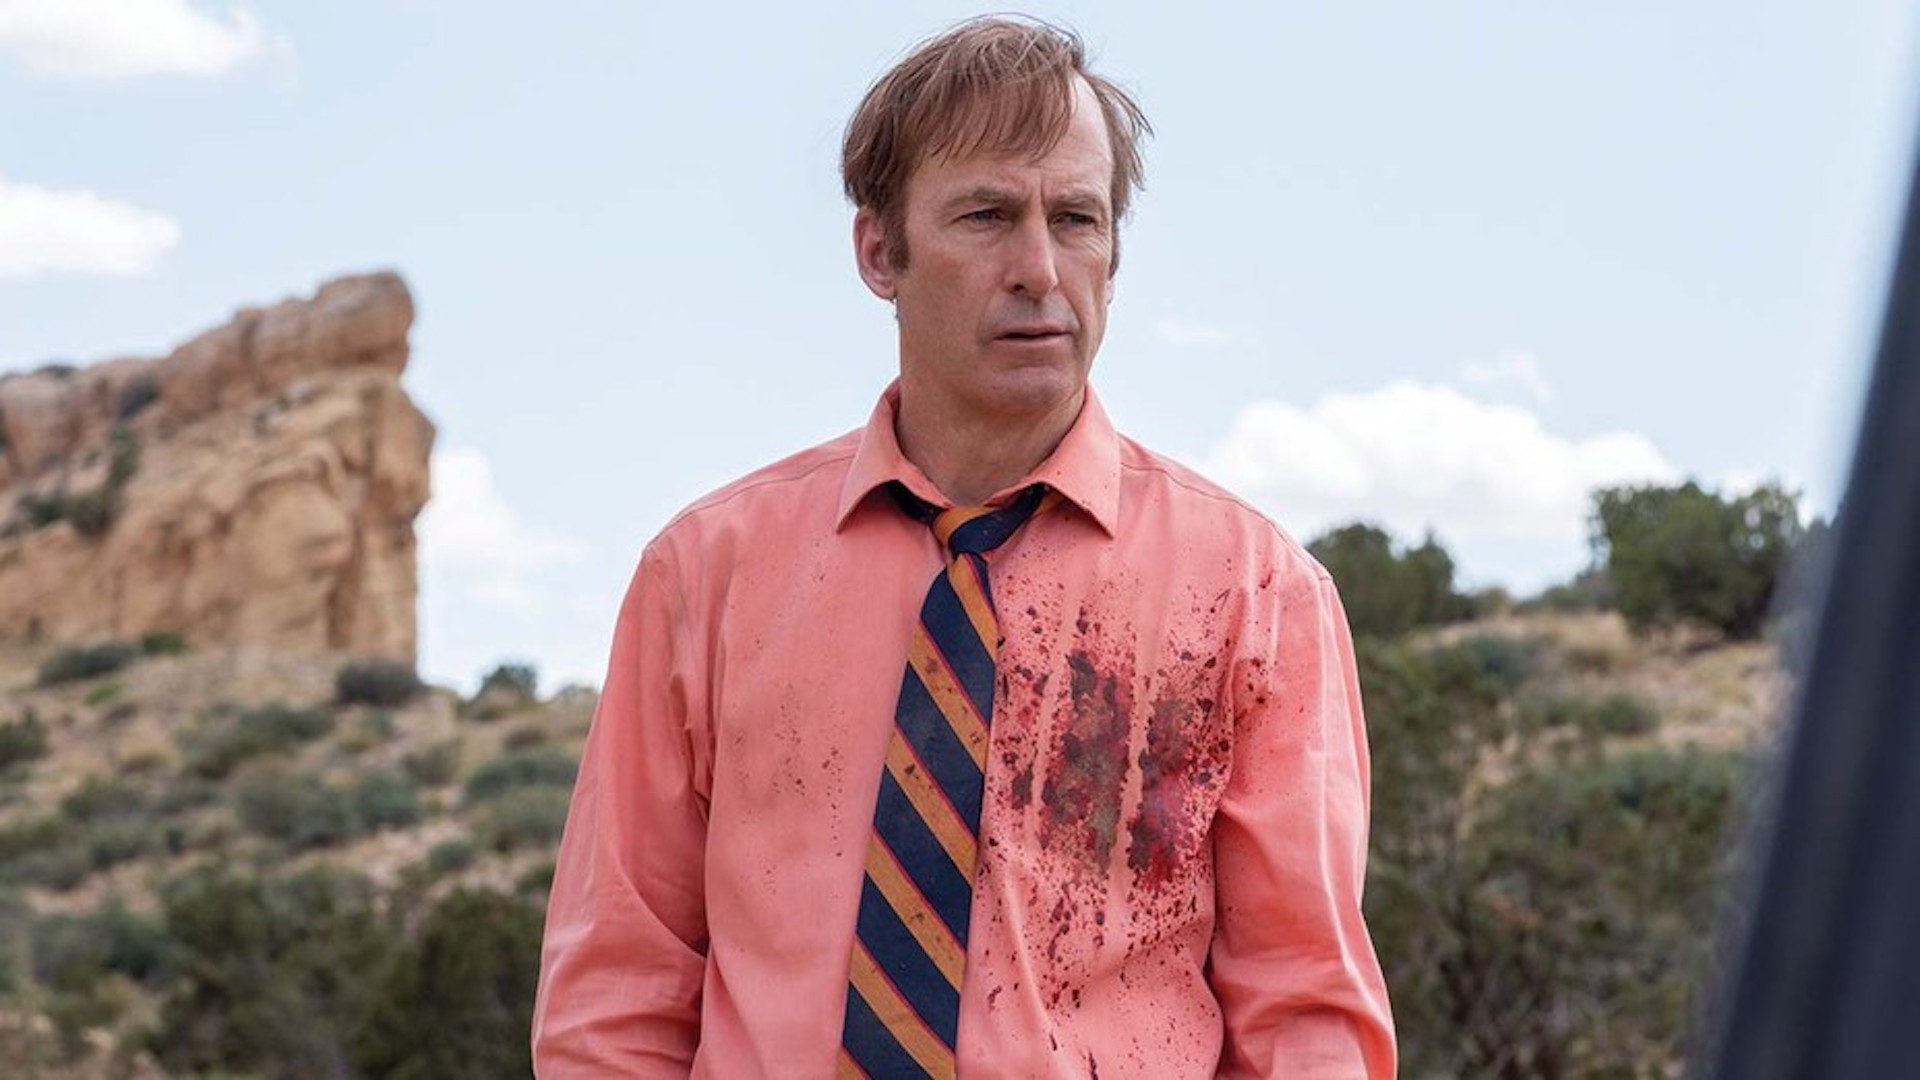 WGA Awards: 'Better Call Saul' Scores Leading 5 Noms as TV, New Media, News Categories Unveiled